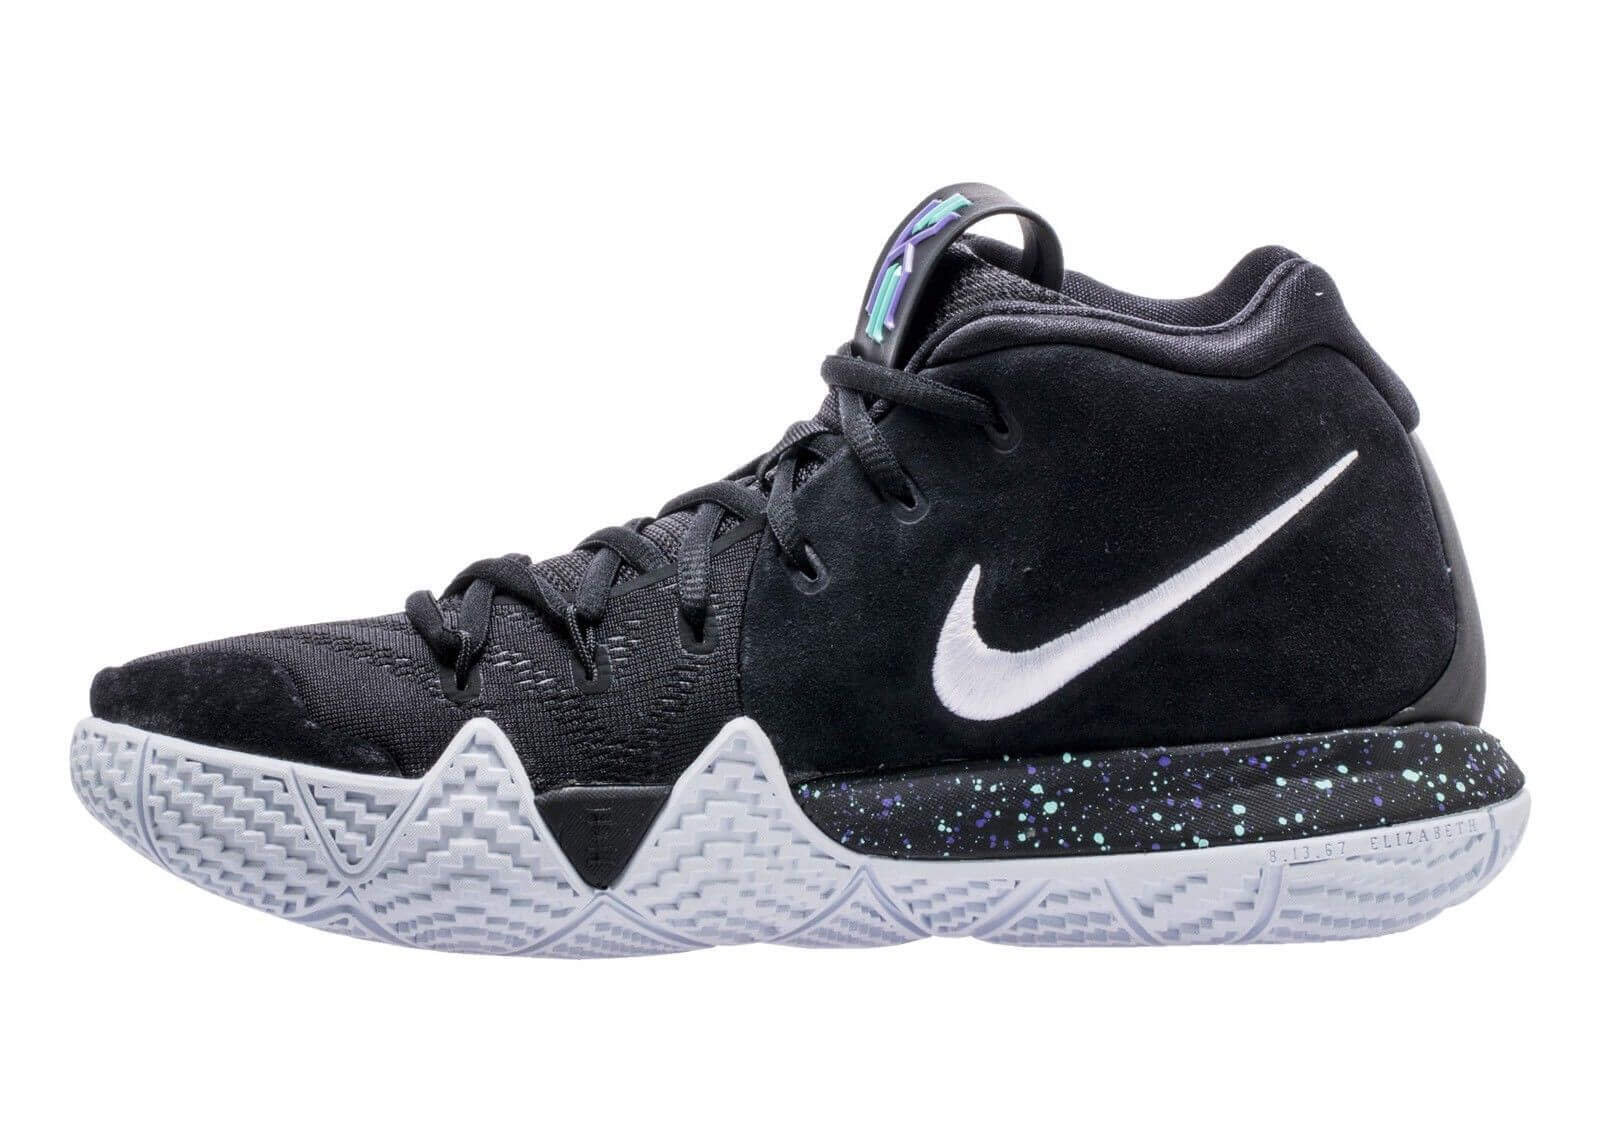 Kyrie Irving Shoes Black And White